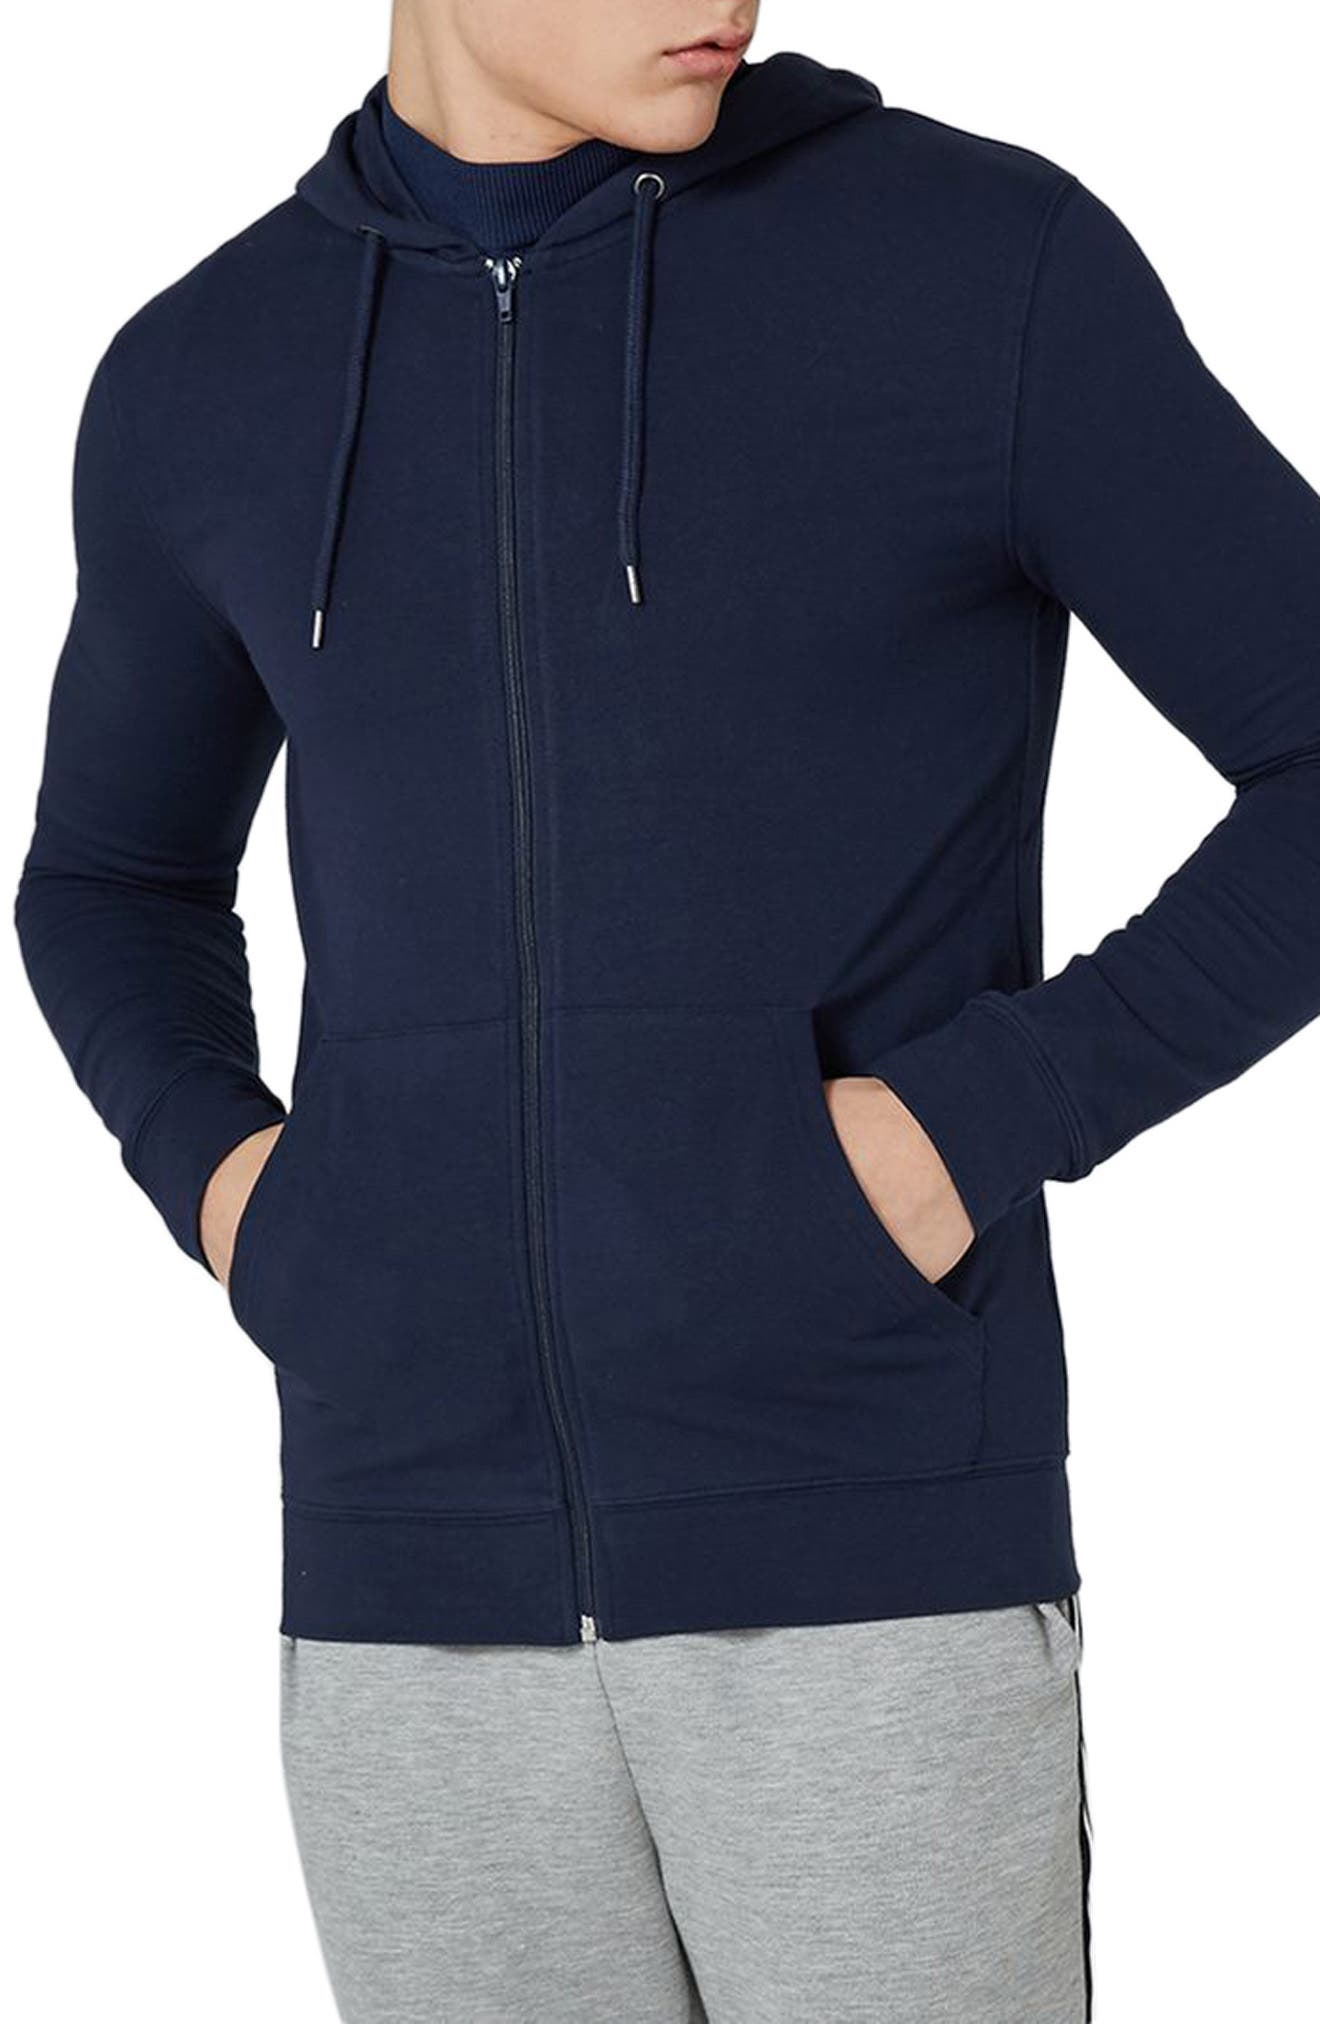 Topman Muscle Fit Zip Through Hoodie